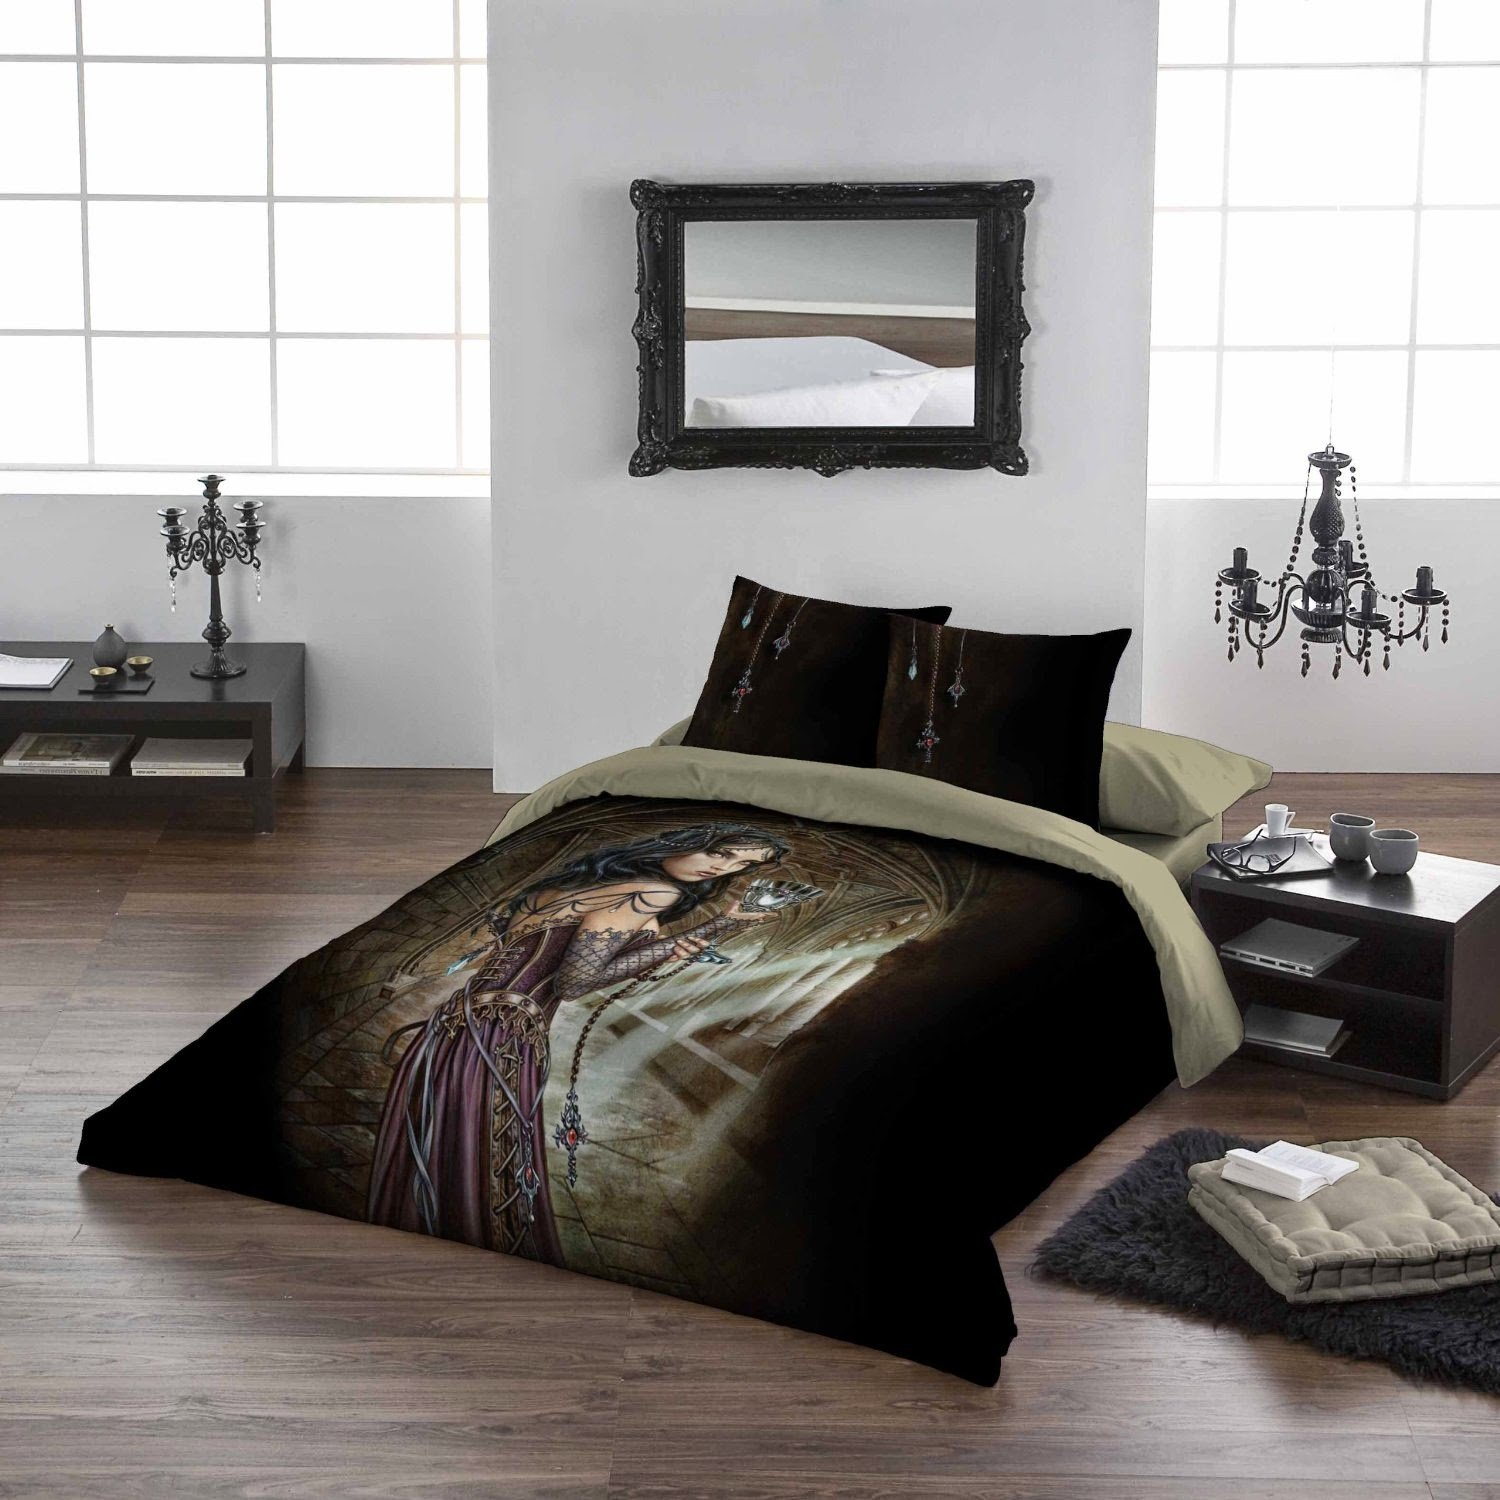 Best Bedroom Decor Ideas And Designs Top Ten Gothic Bedding With Pictures